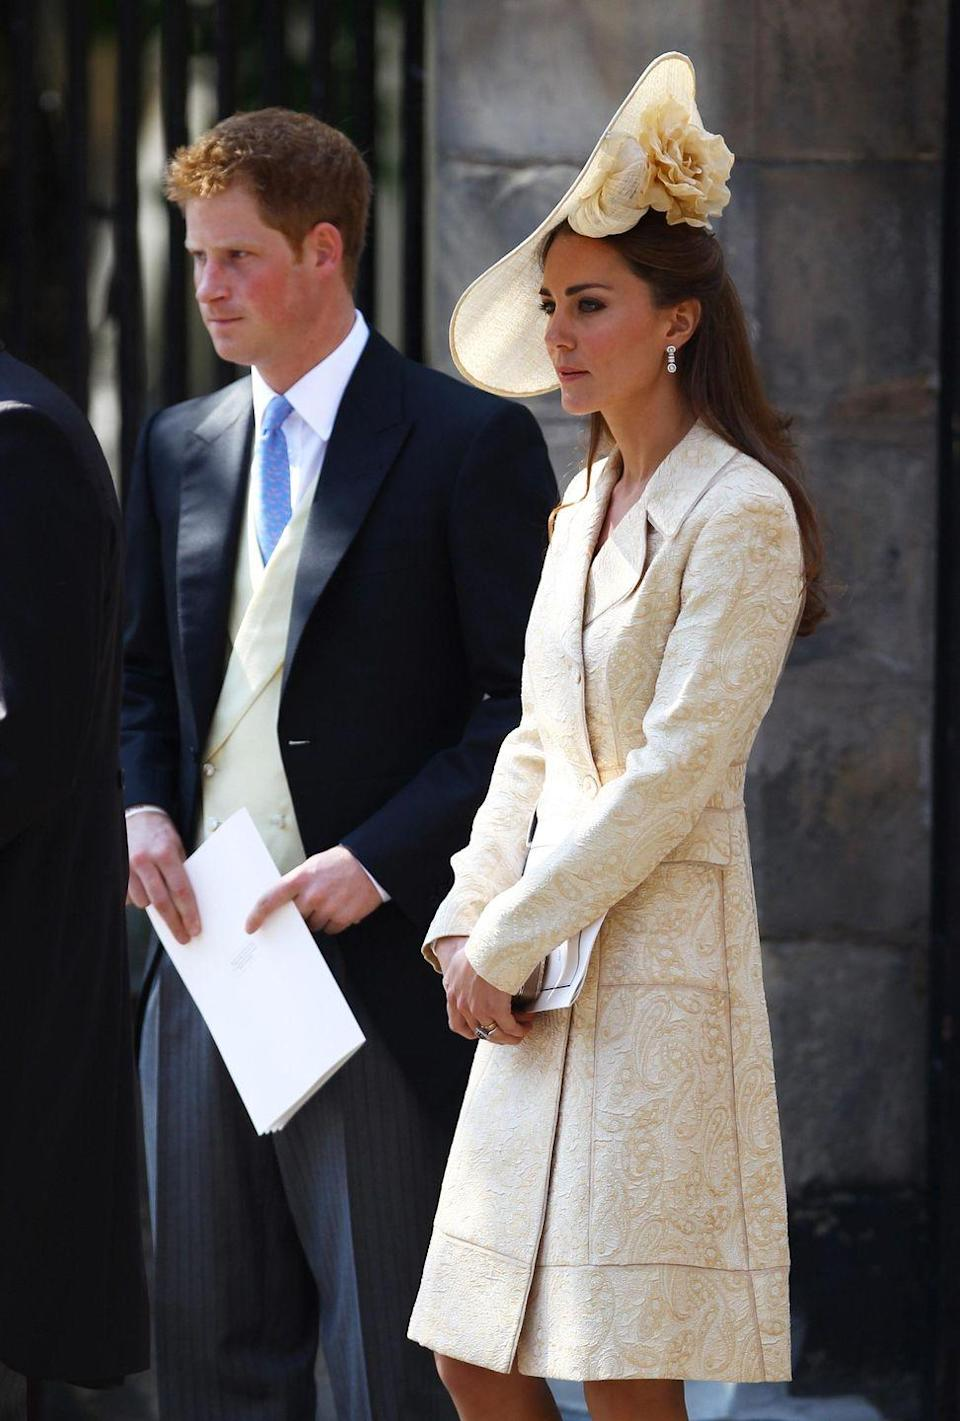 <p>For another in-law wedding (the union of Zara Phillips and Mike Tindall) in Scotland, Kate brought back the Day Birger et Mikkelsen, but opted to go with a giant potato chip flower hat. </p>